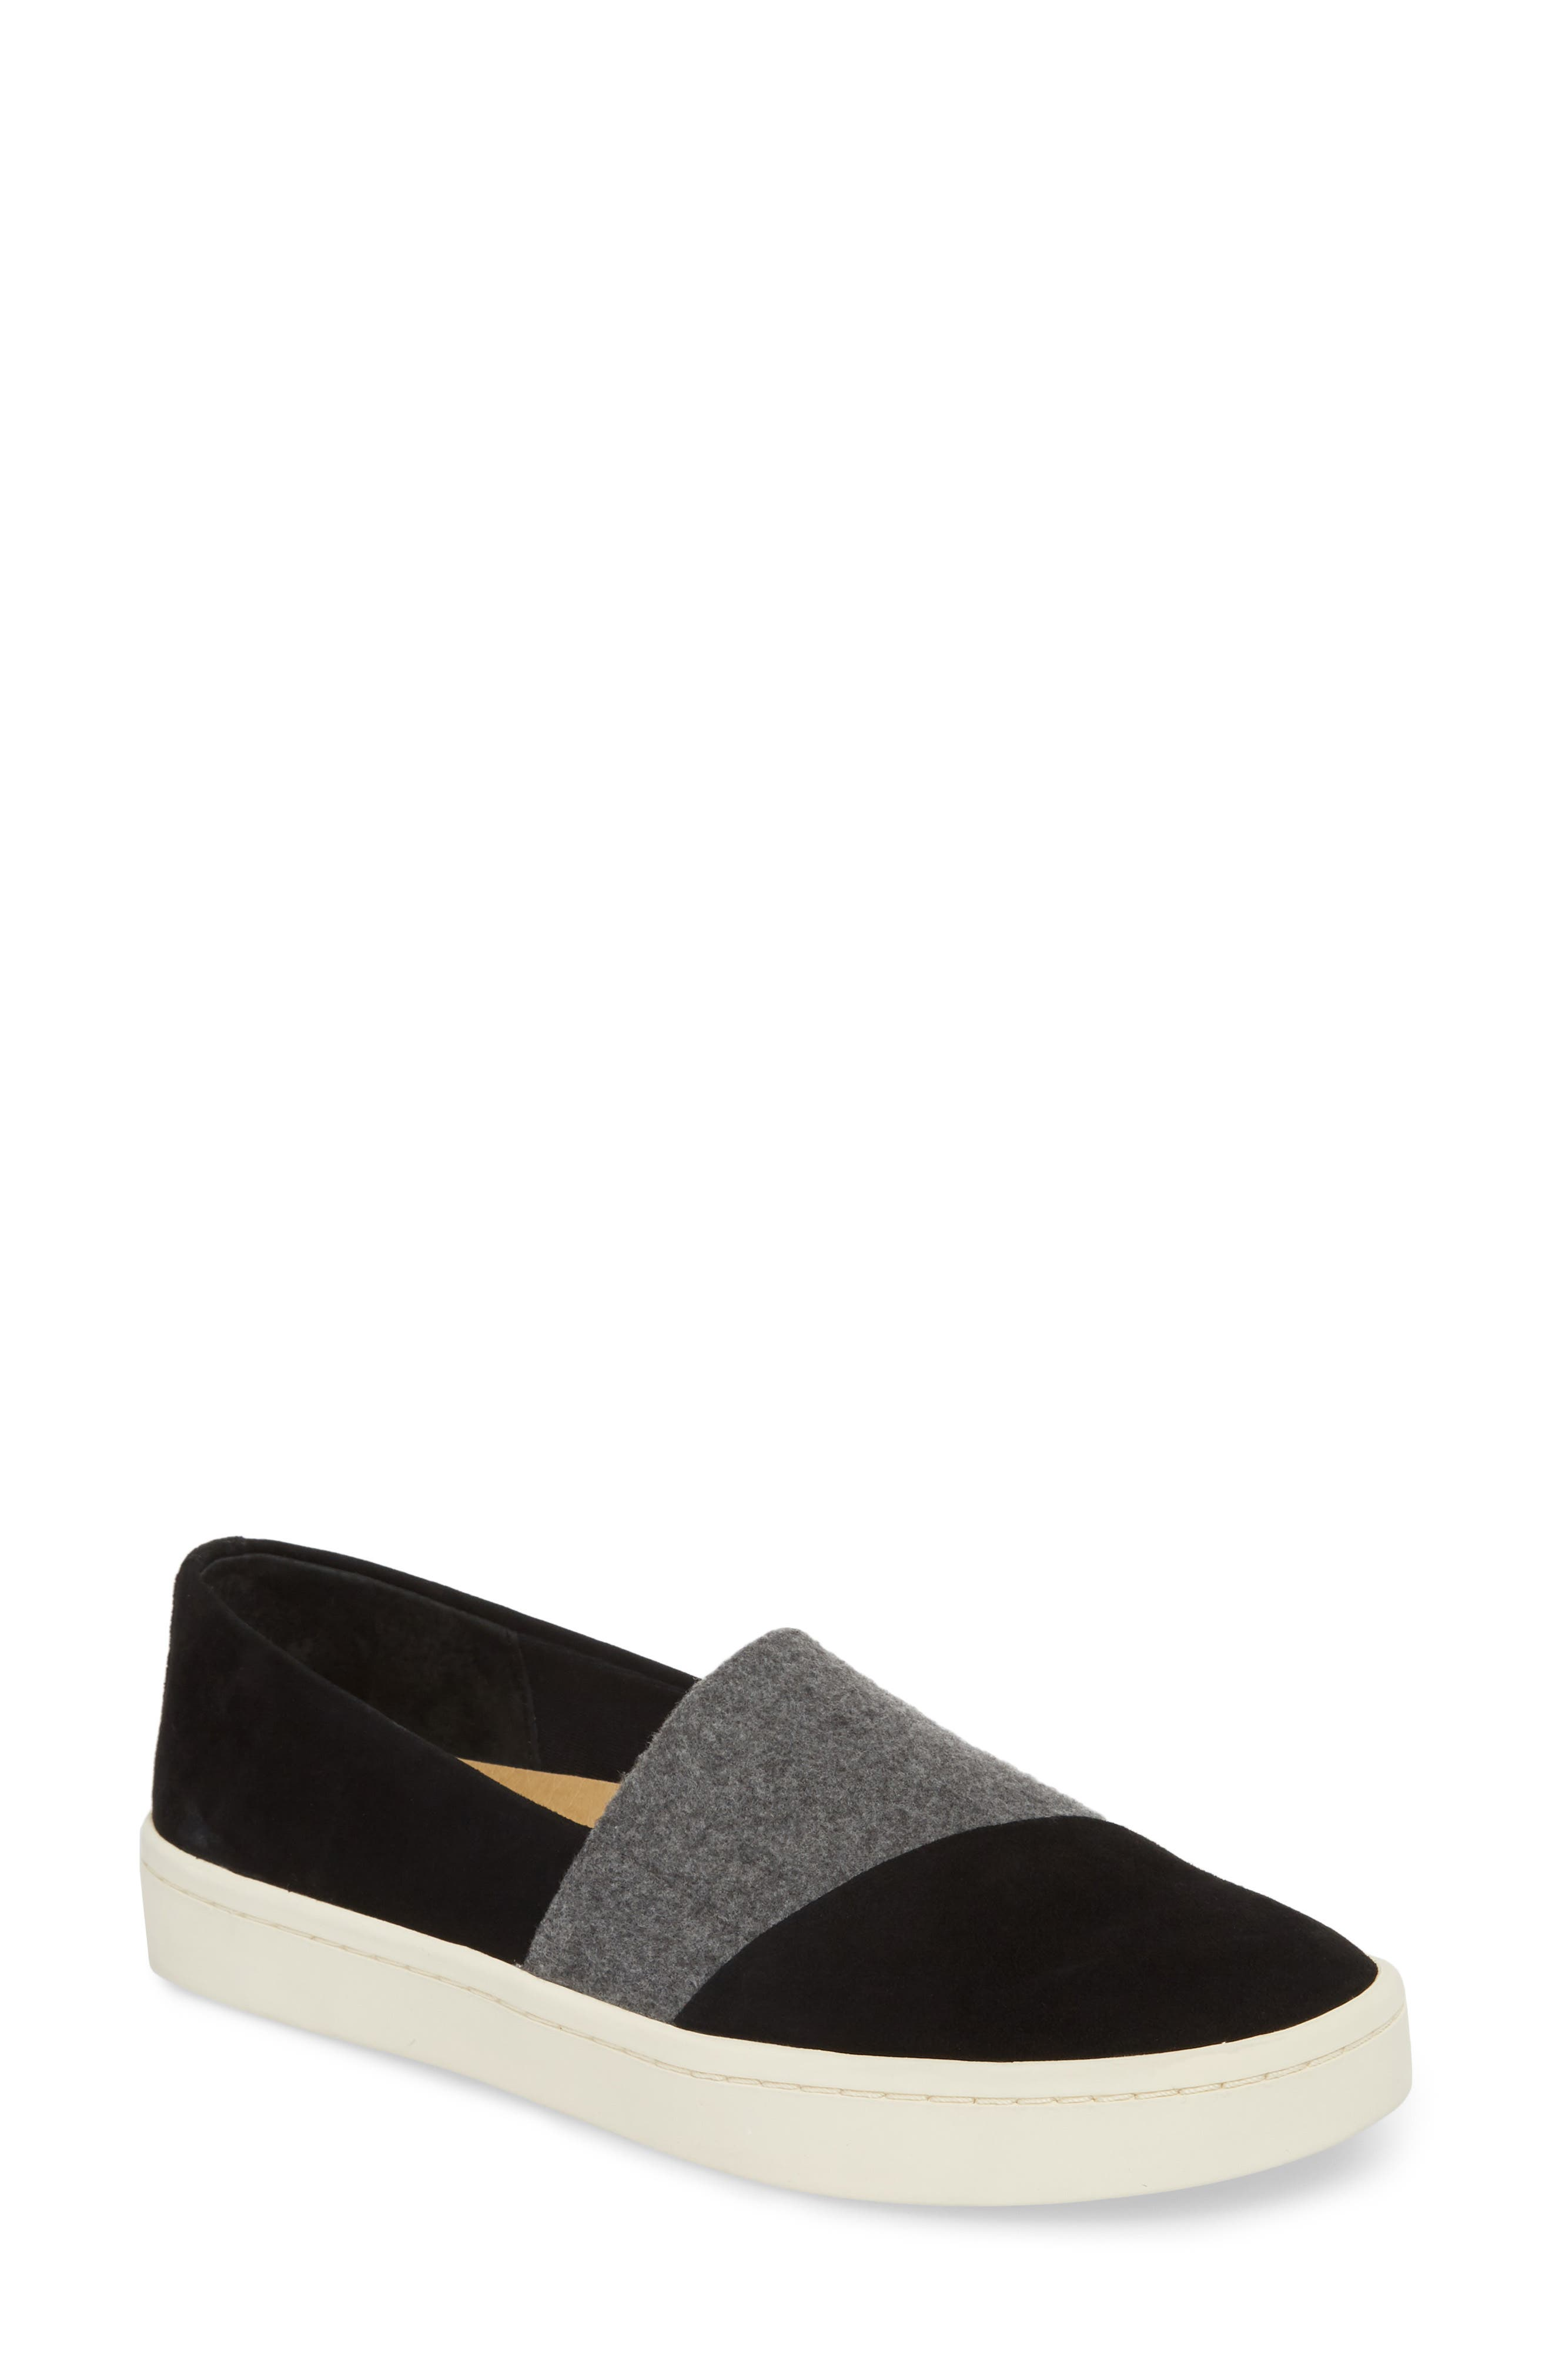 Nouvel Slip-On Sneaker,                         Main,                         color, Black/ Grey Suede